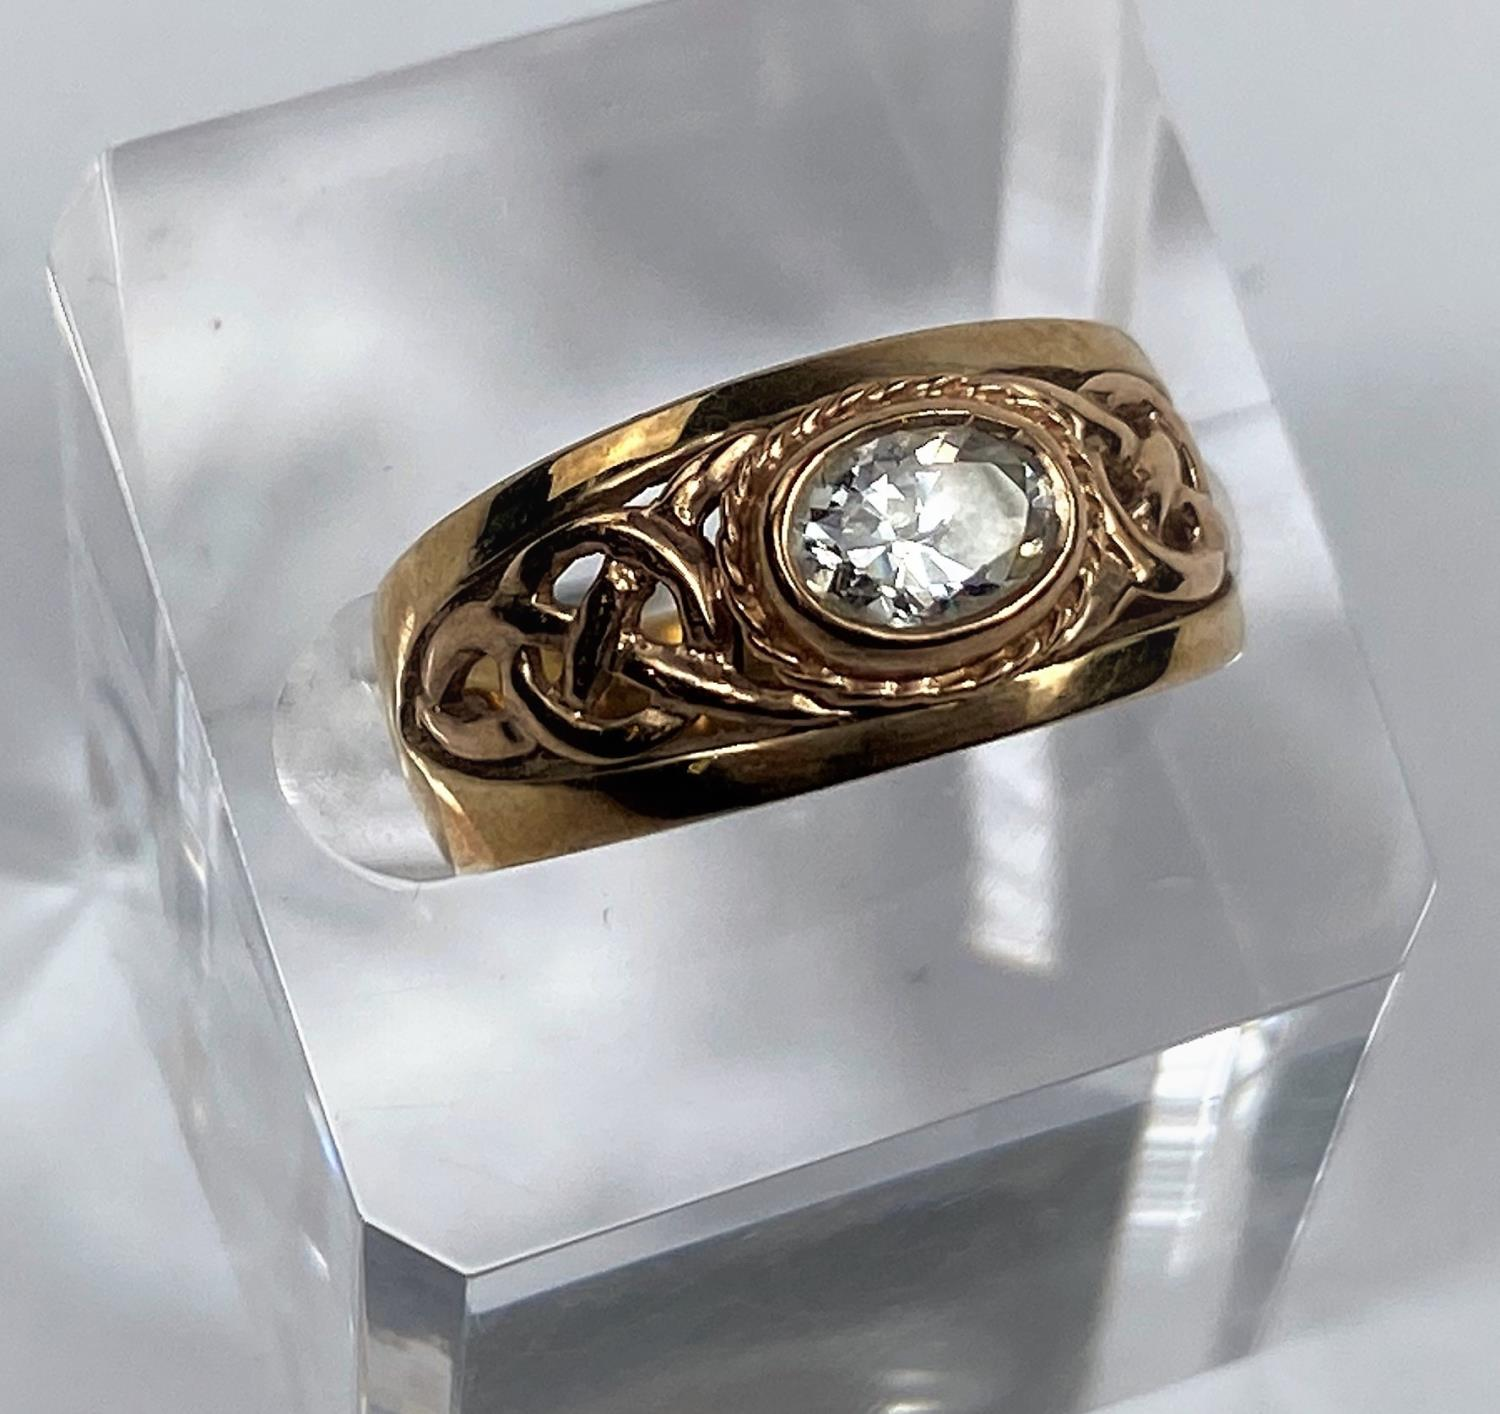 A 9 carat hallmarked gold period style ring set clear oval stone, the split shank with pierced